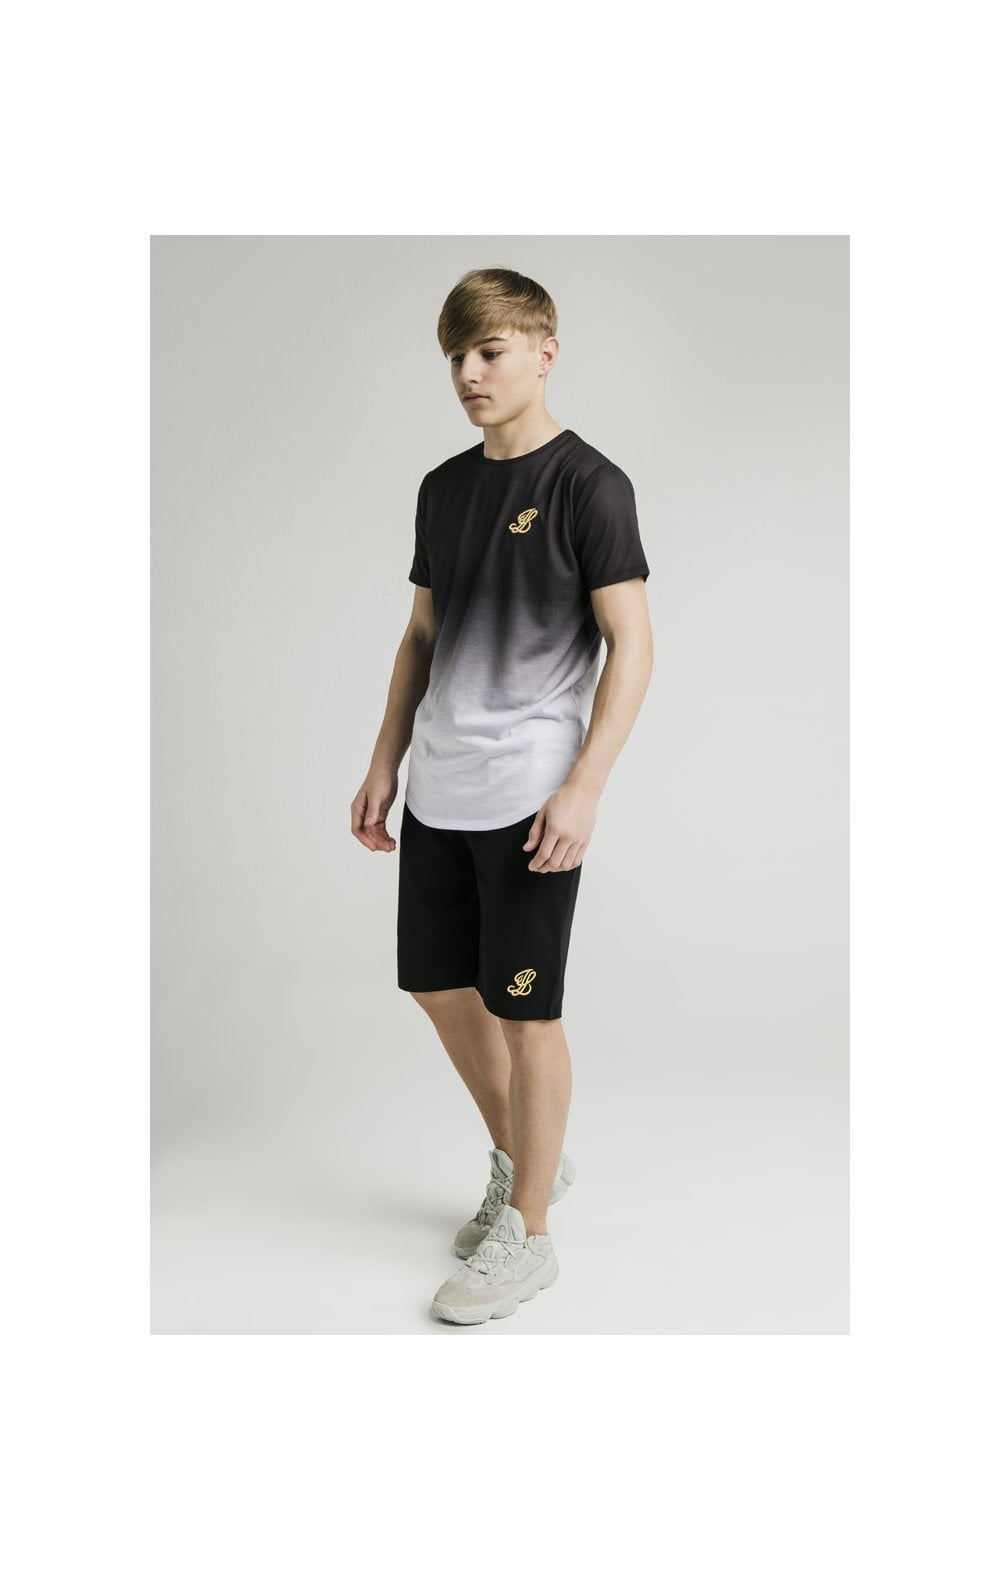 Load image into Gallery viewer, Illusive London S/S Fade Tee - Black & White (6)